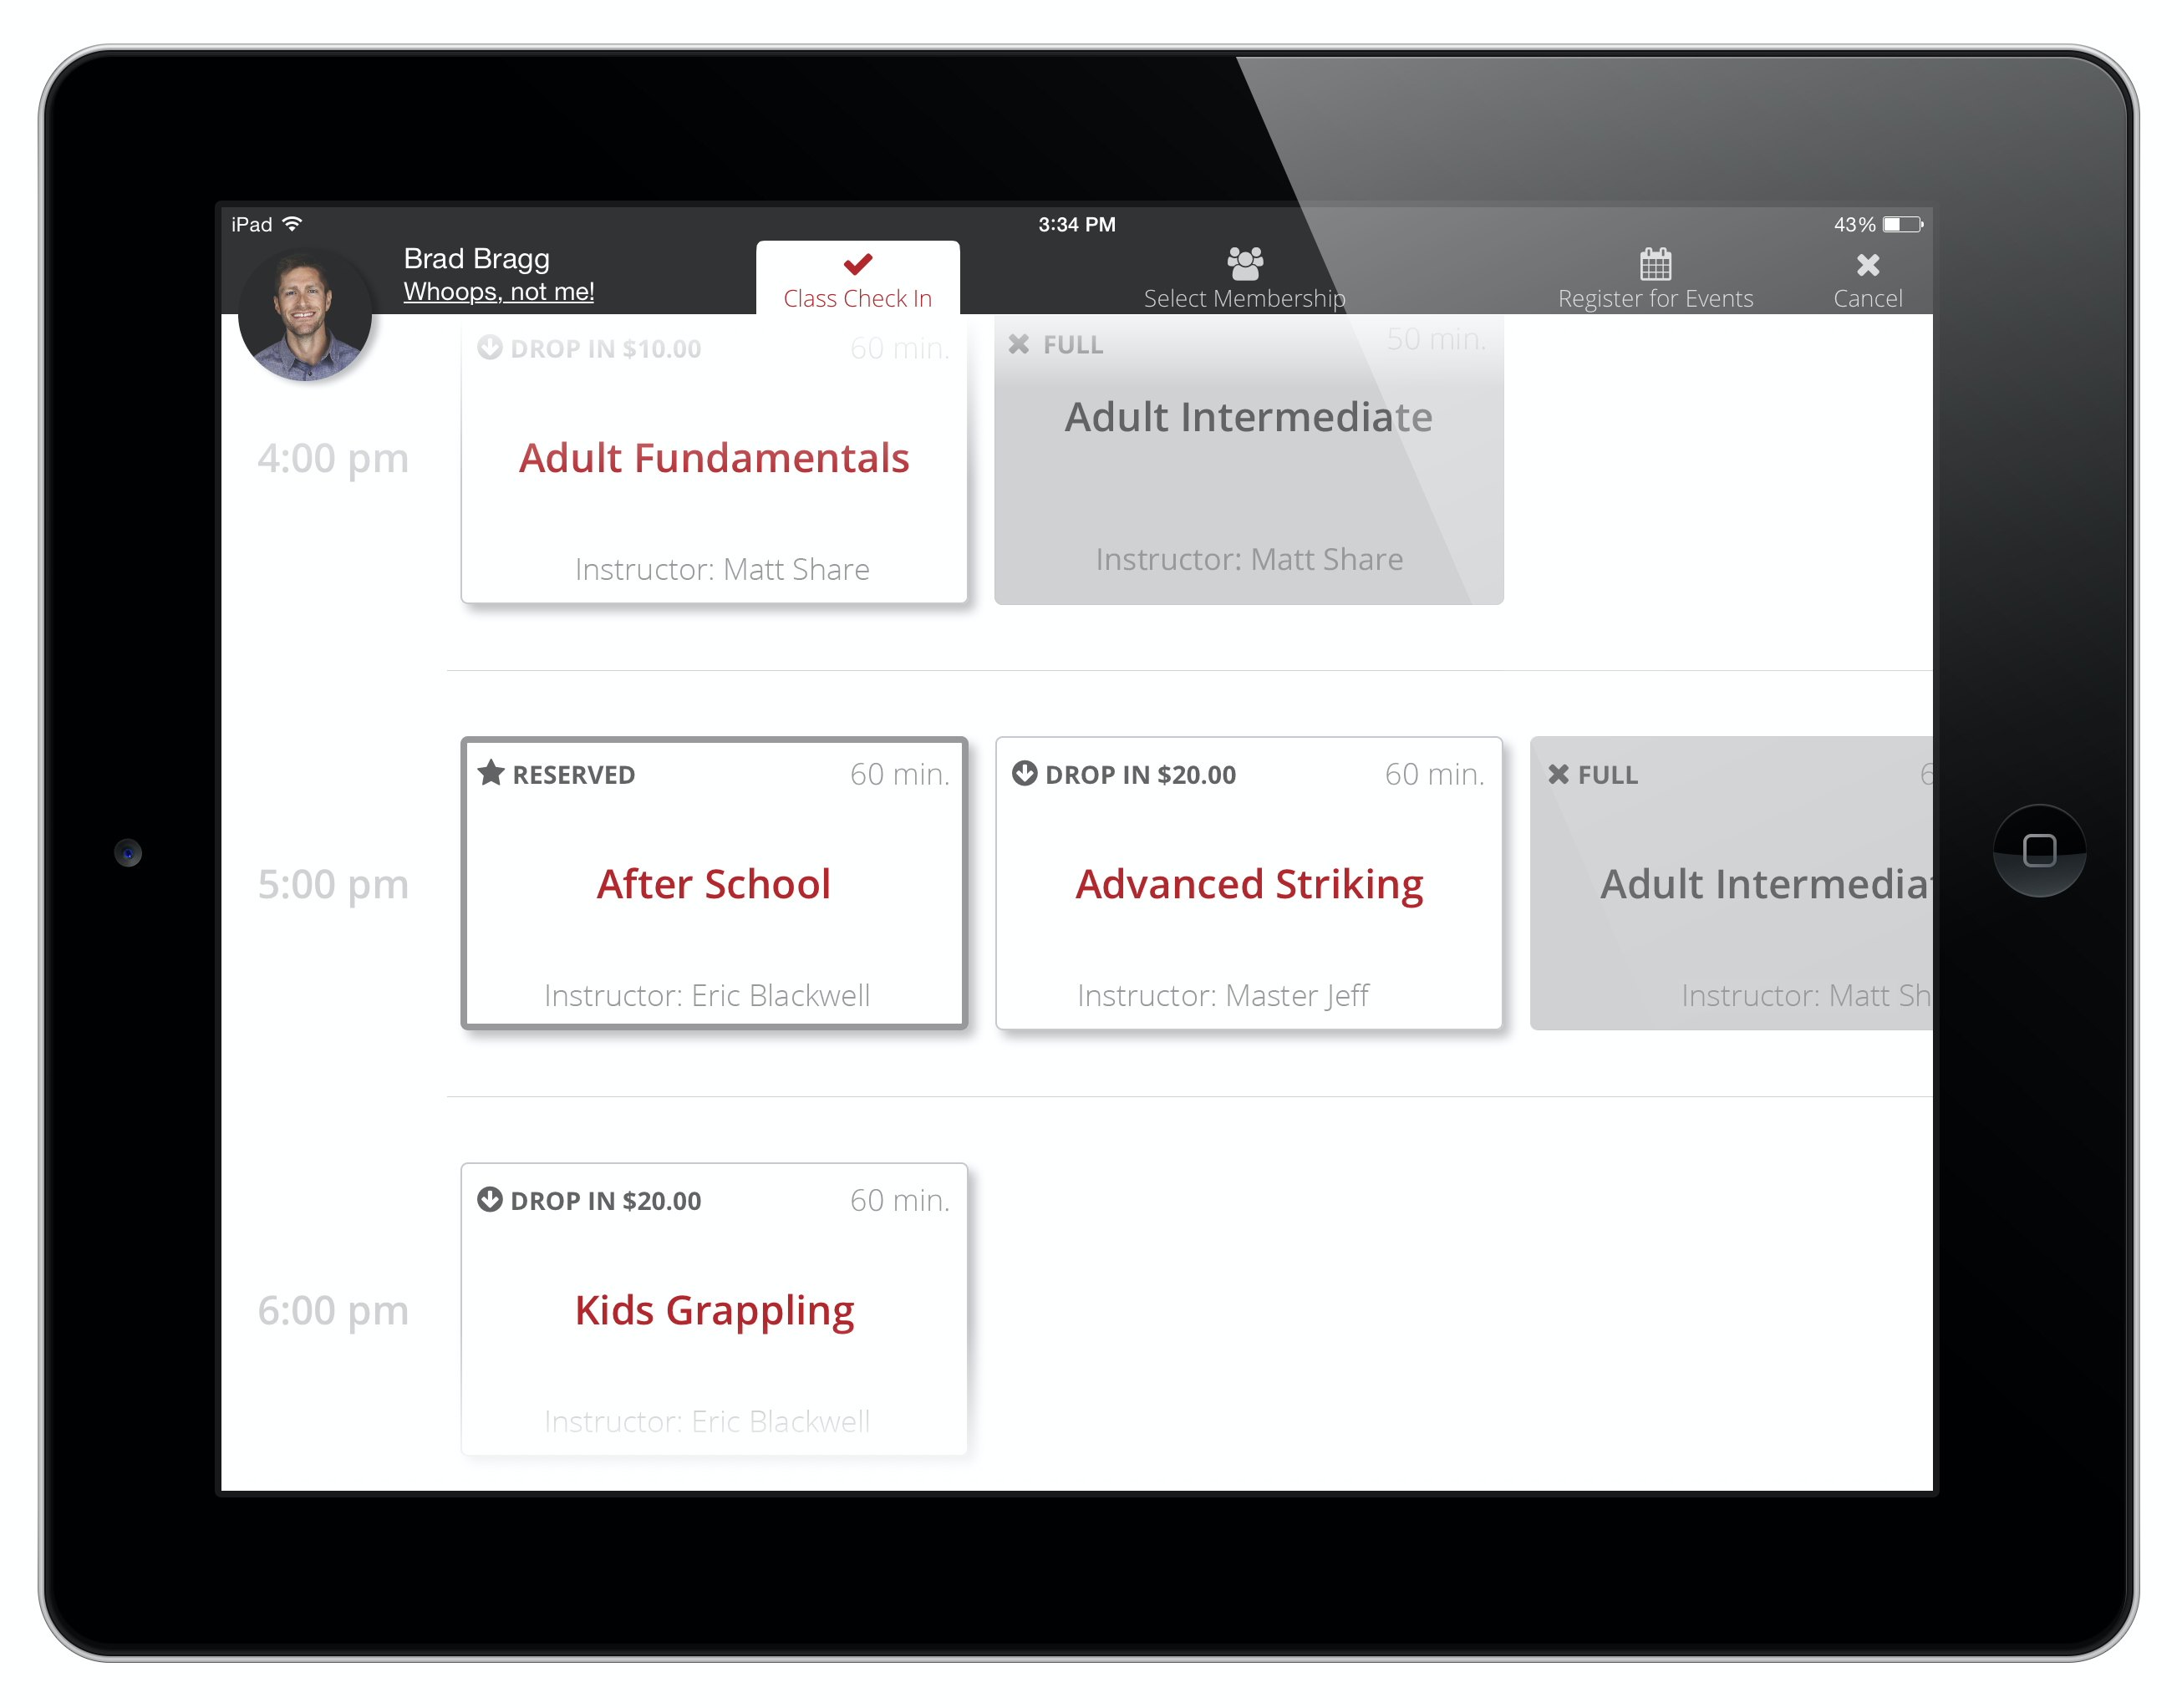 Members can quickly & easily check-in to classes and appointments on the Kiosk iPad App